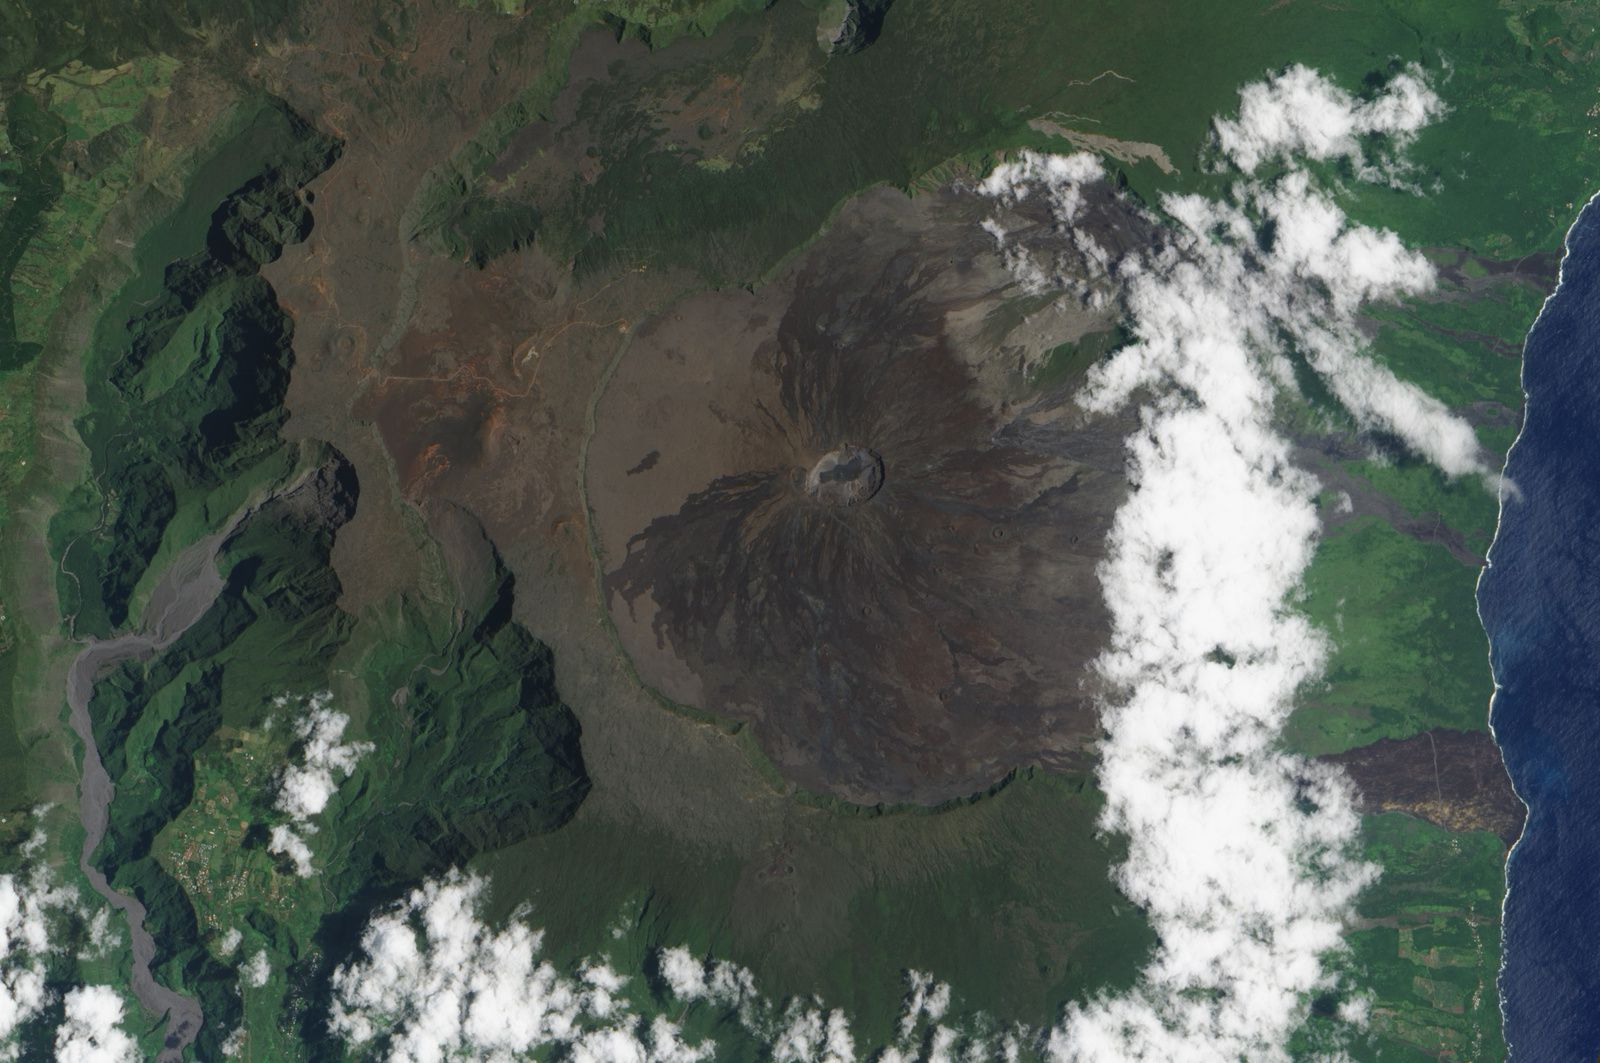 The Piton de la Fournaise - seen by the satellite EO-1 ALI NASA / Caption by Michon Scott.